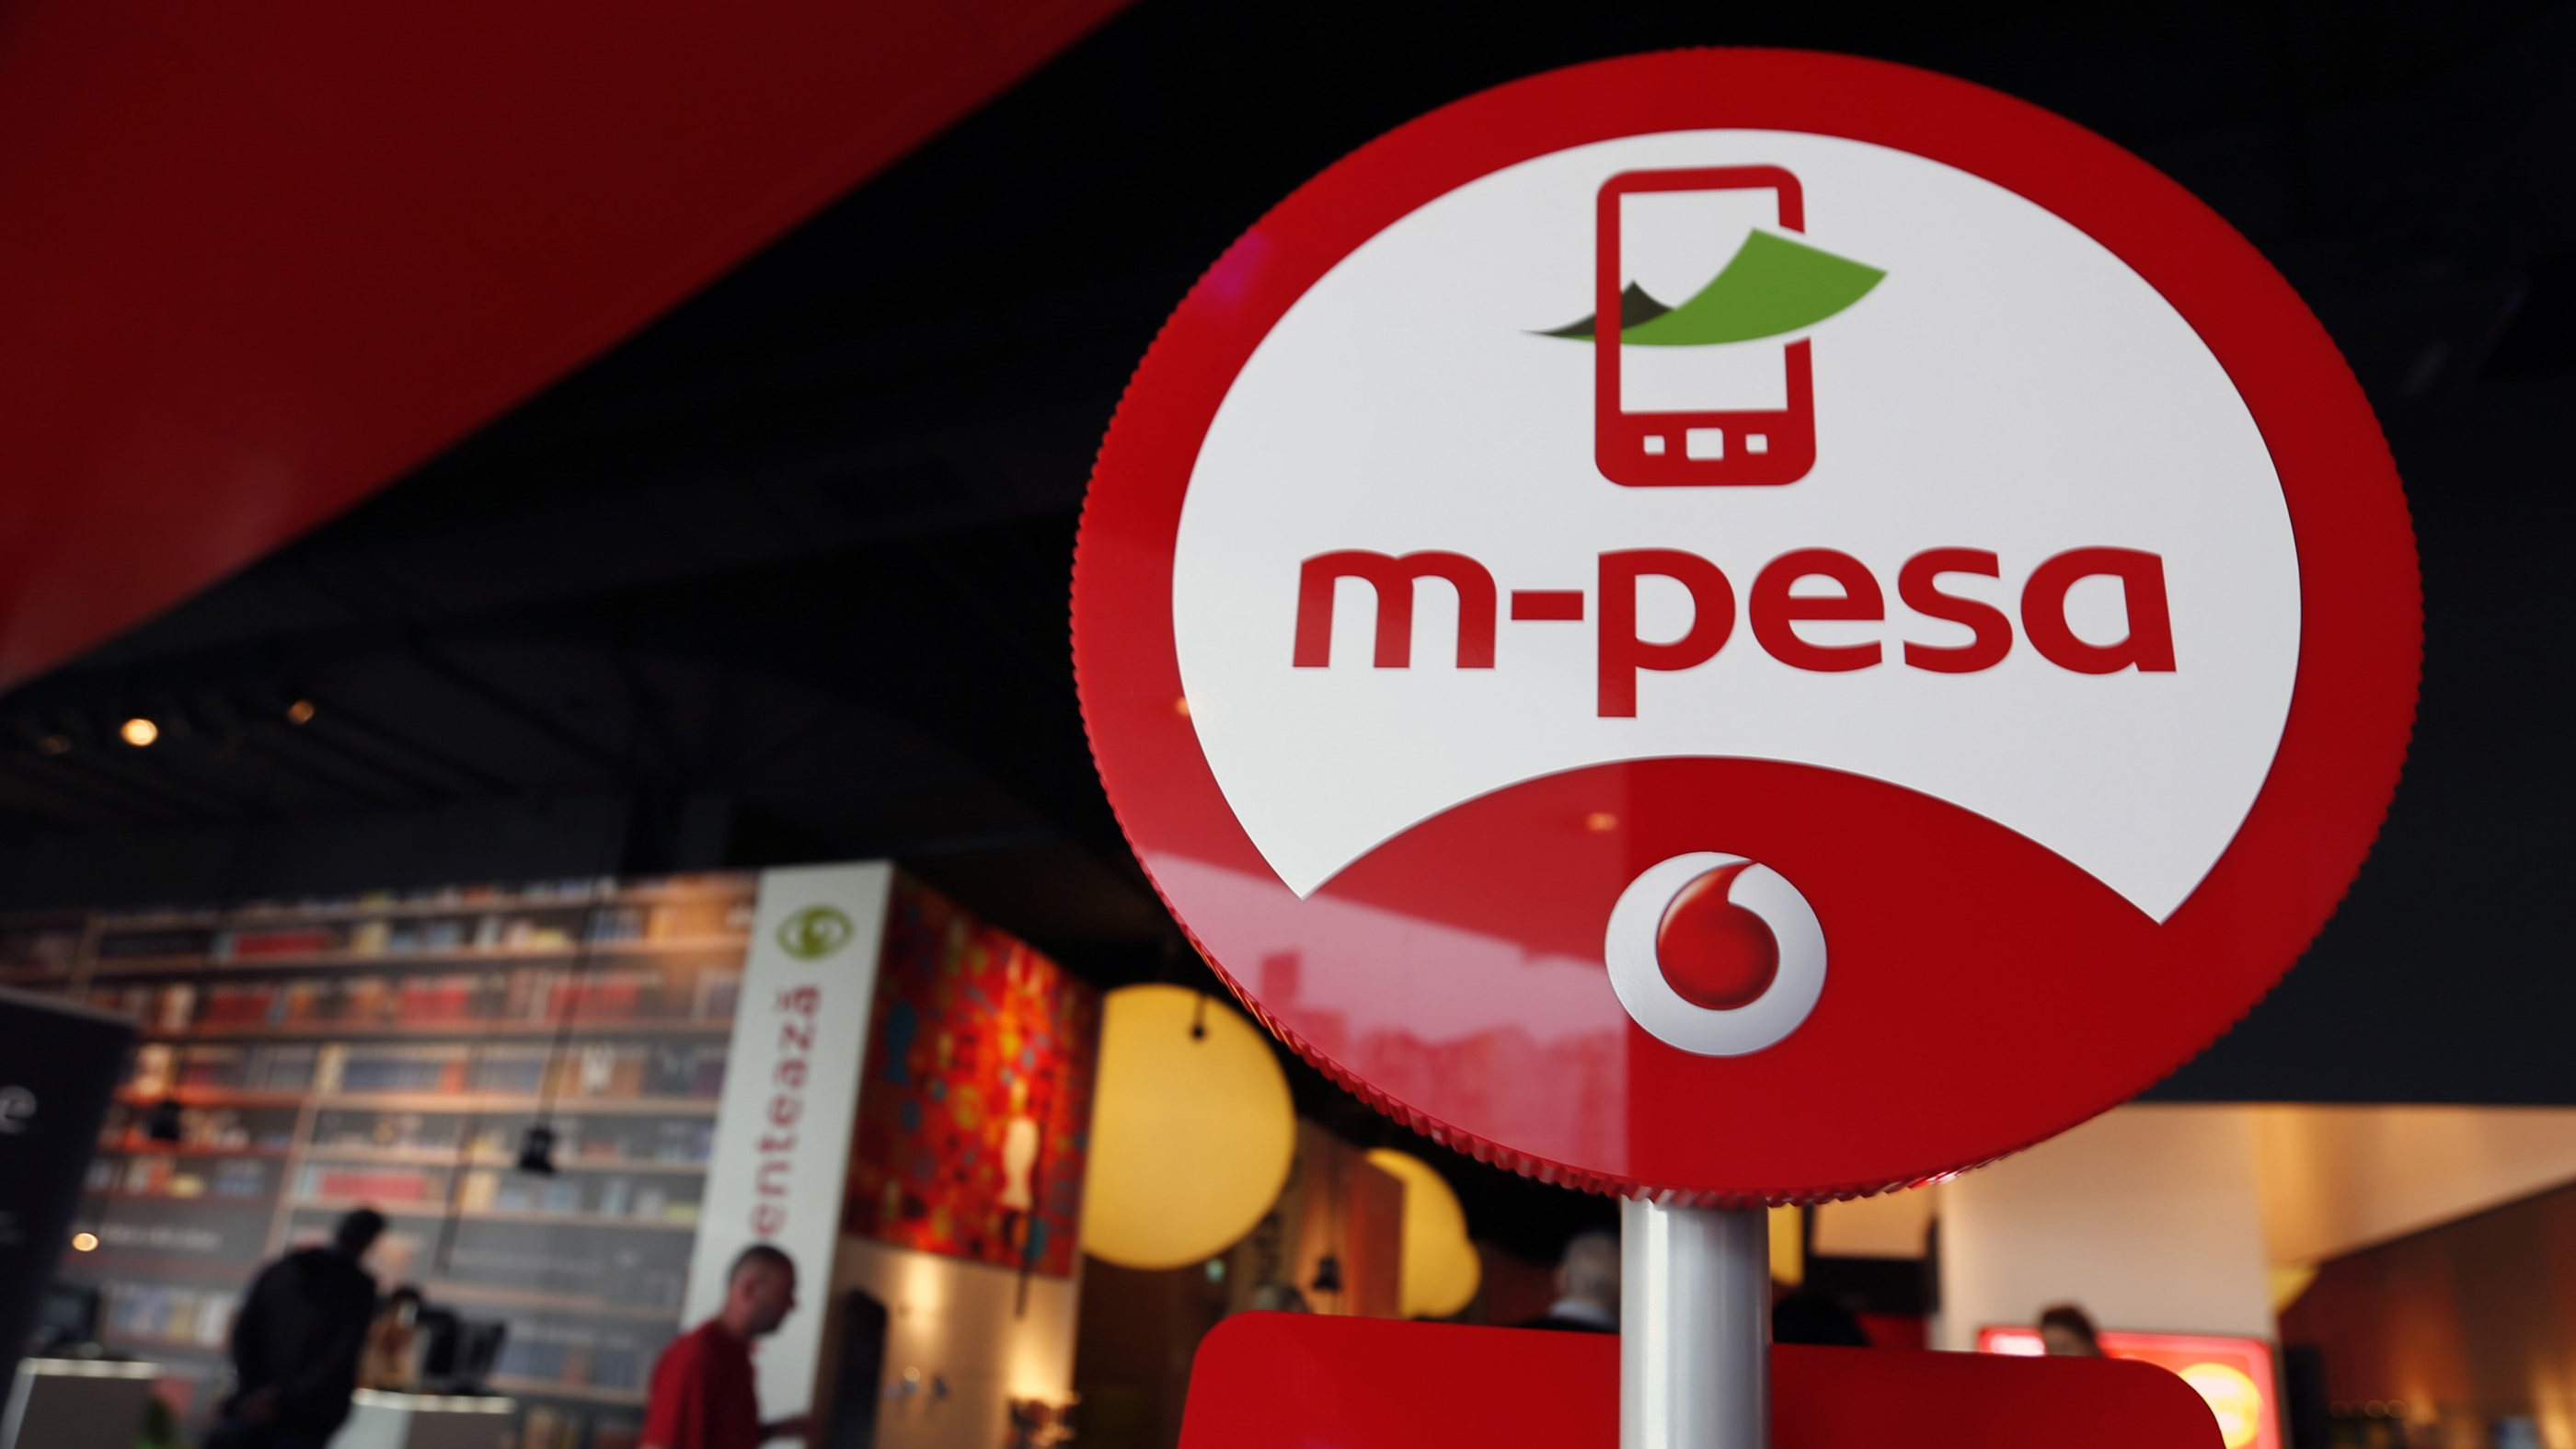 In South Africa, the popular mobile-money platform, Mpesa, is struggling to grow.